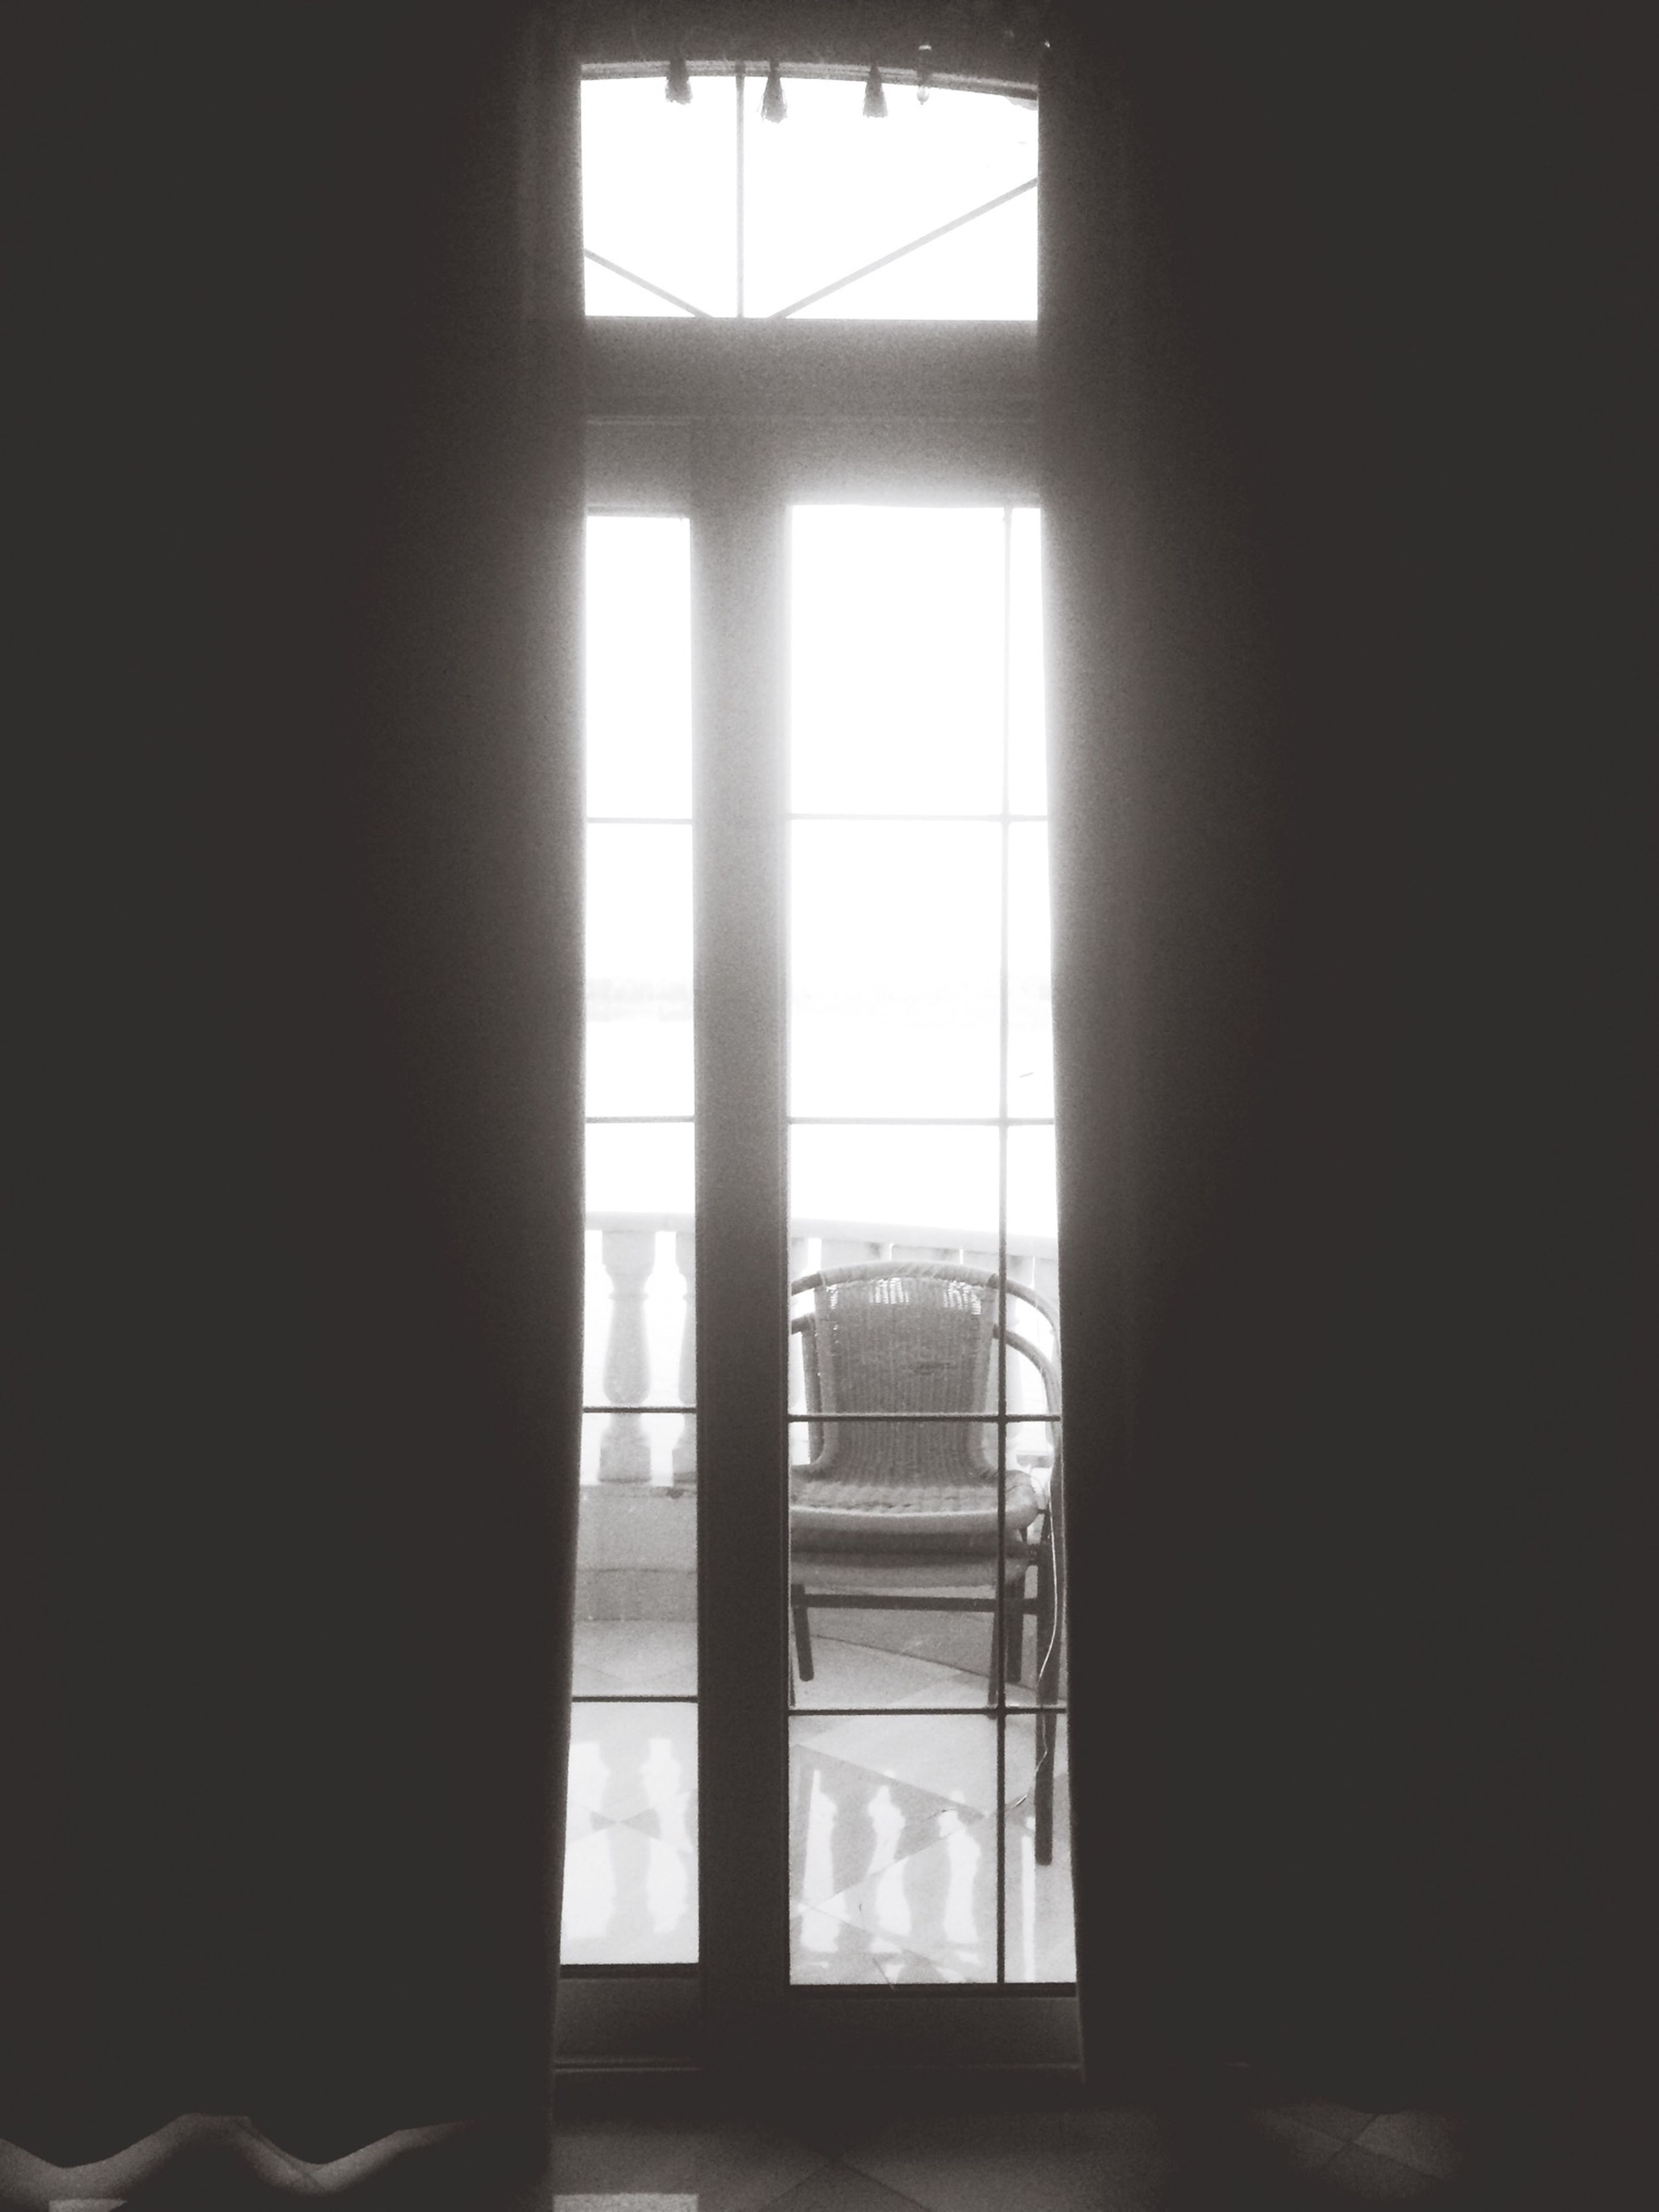 indoors, window, home interior, glass - material, transparent, curtain, architecture, built structure, house, sunlight, closed, door, window frame, day, open, no people, dark, domestic room, glass, blinds